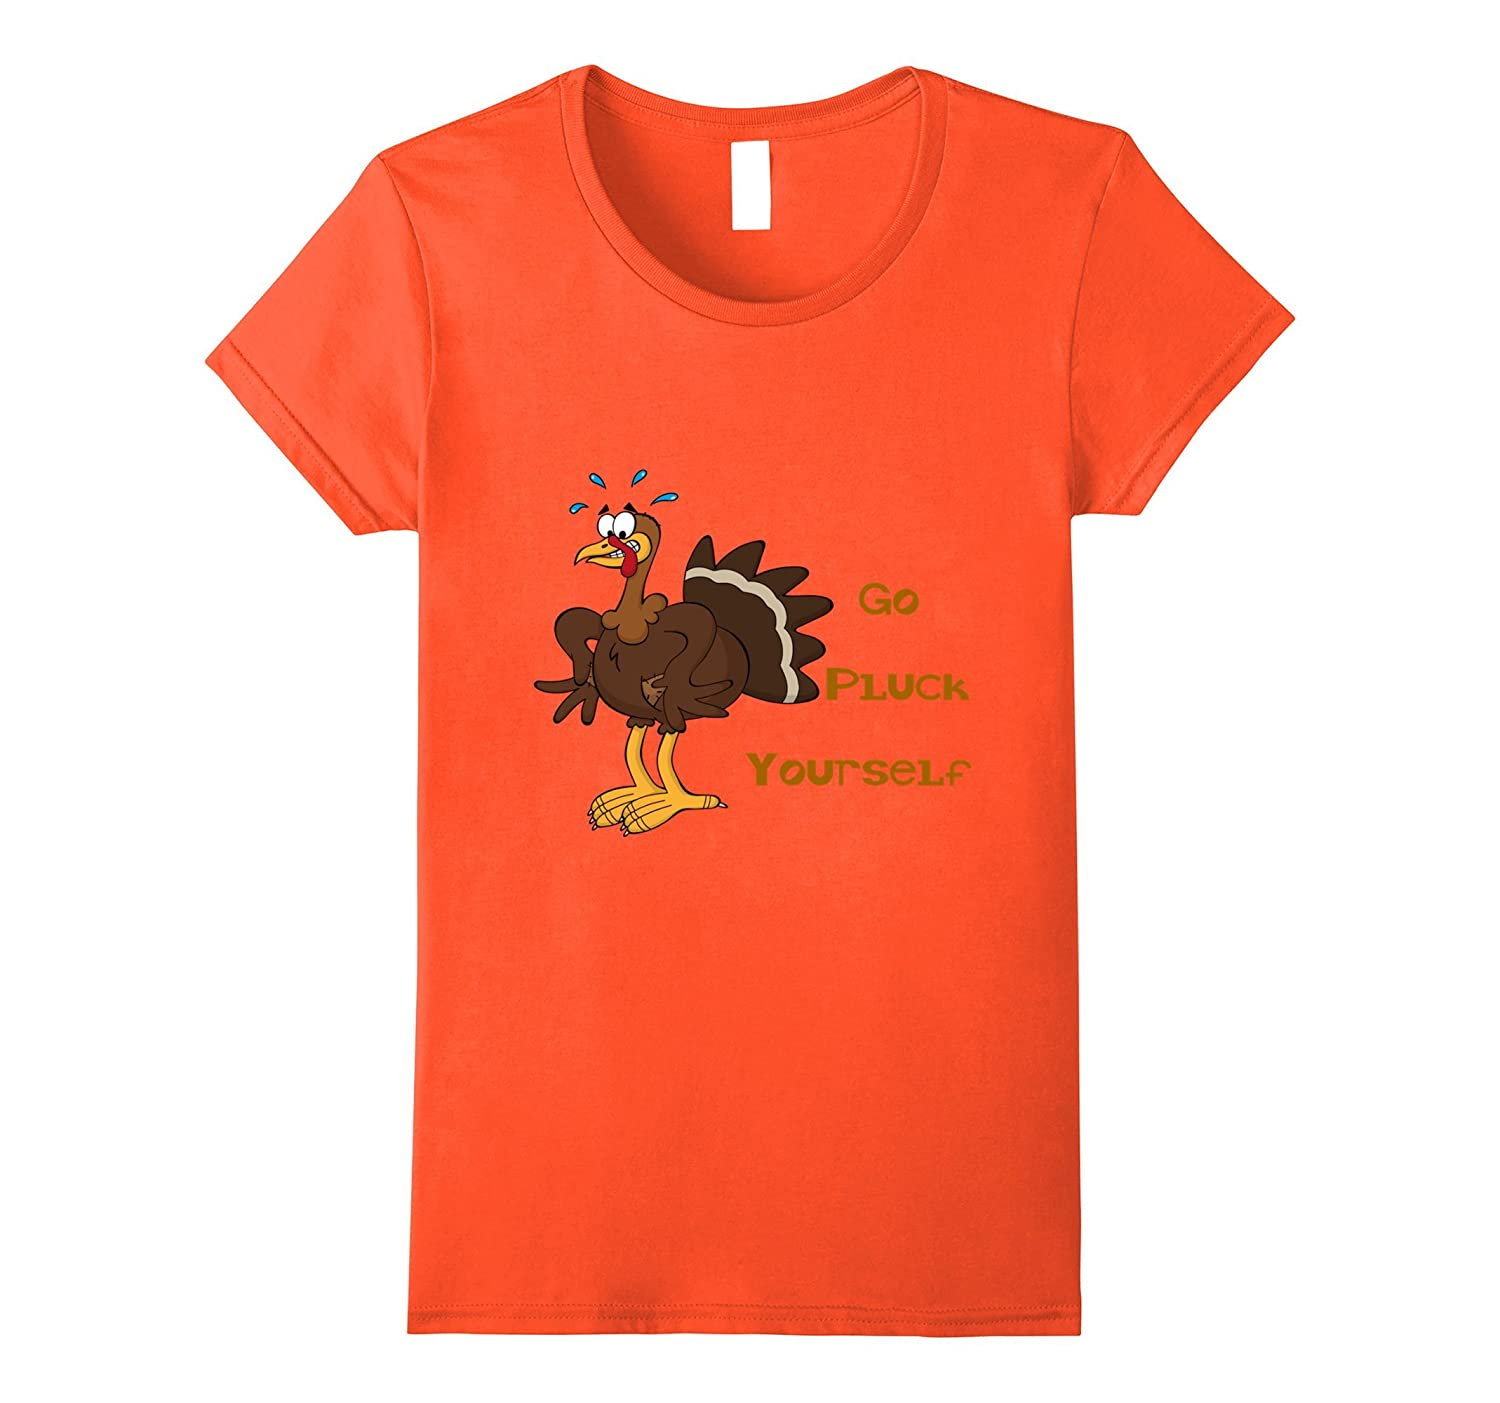 funny thanksgiving t shirt go pluck yourself turkey tee claytee cool t shirt designs for men. Black Bedroom Furniture Sets. Home Design Ideas